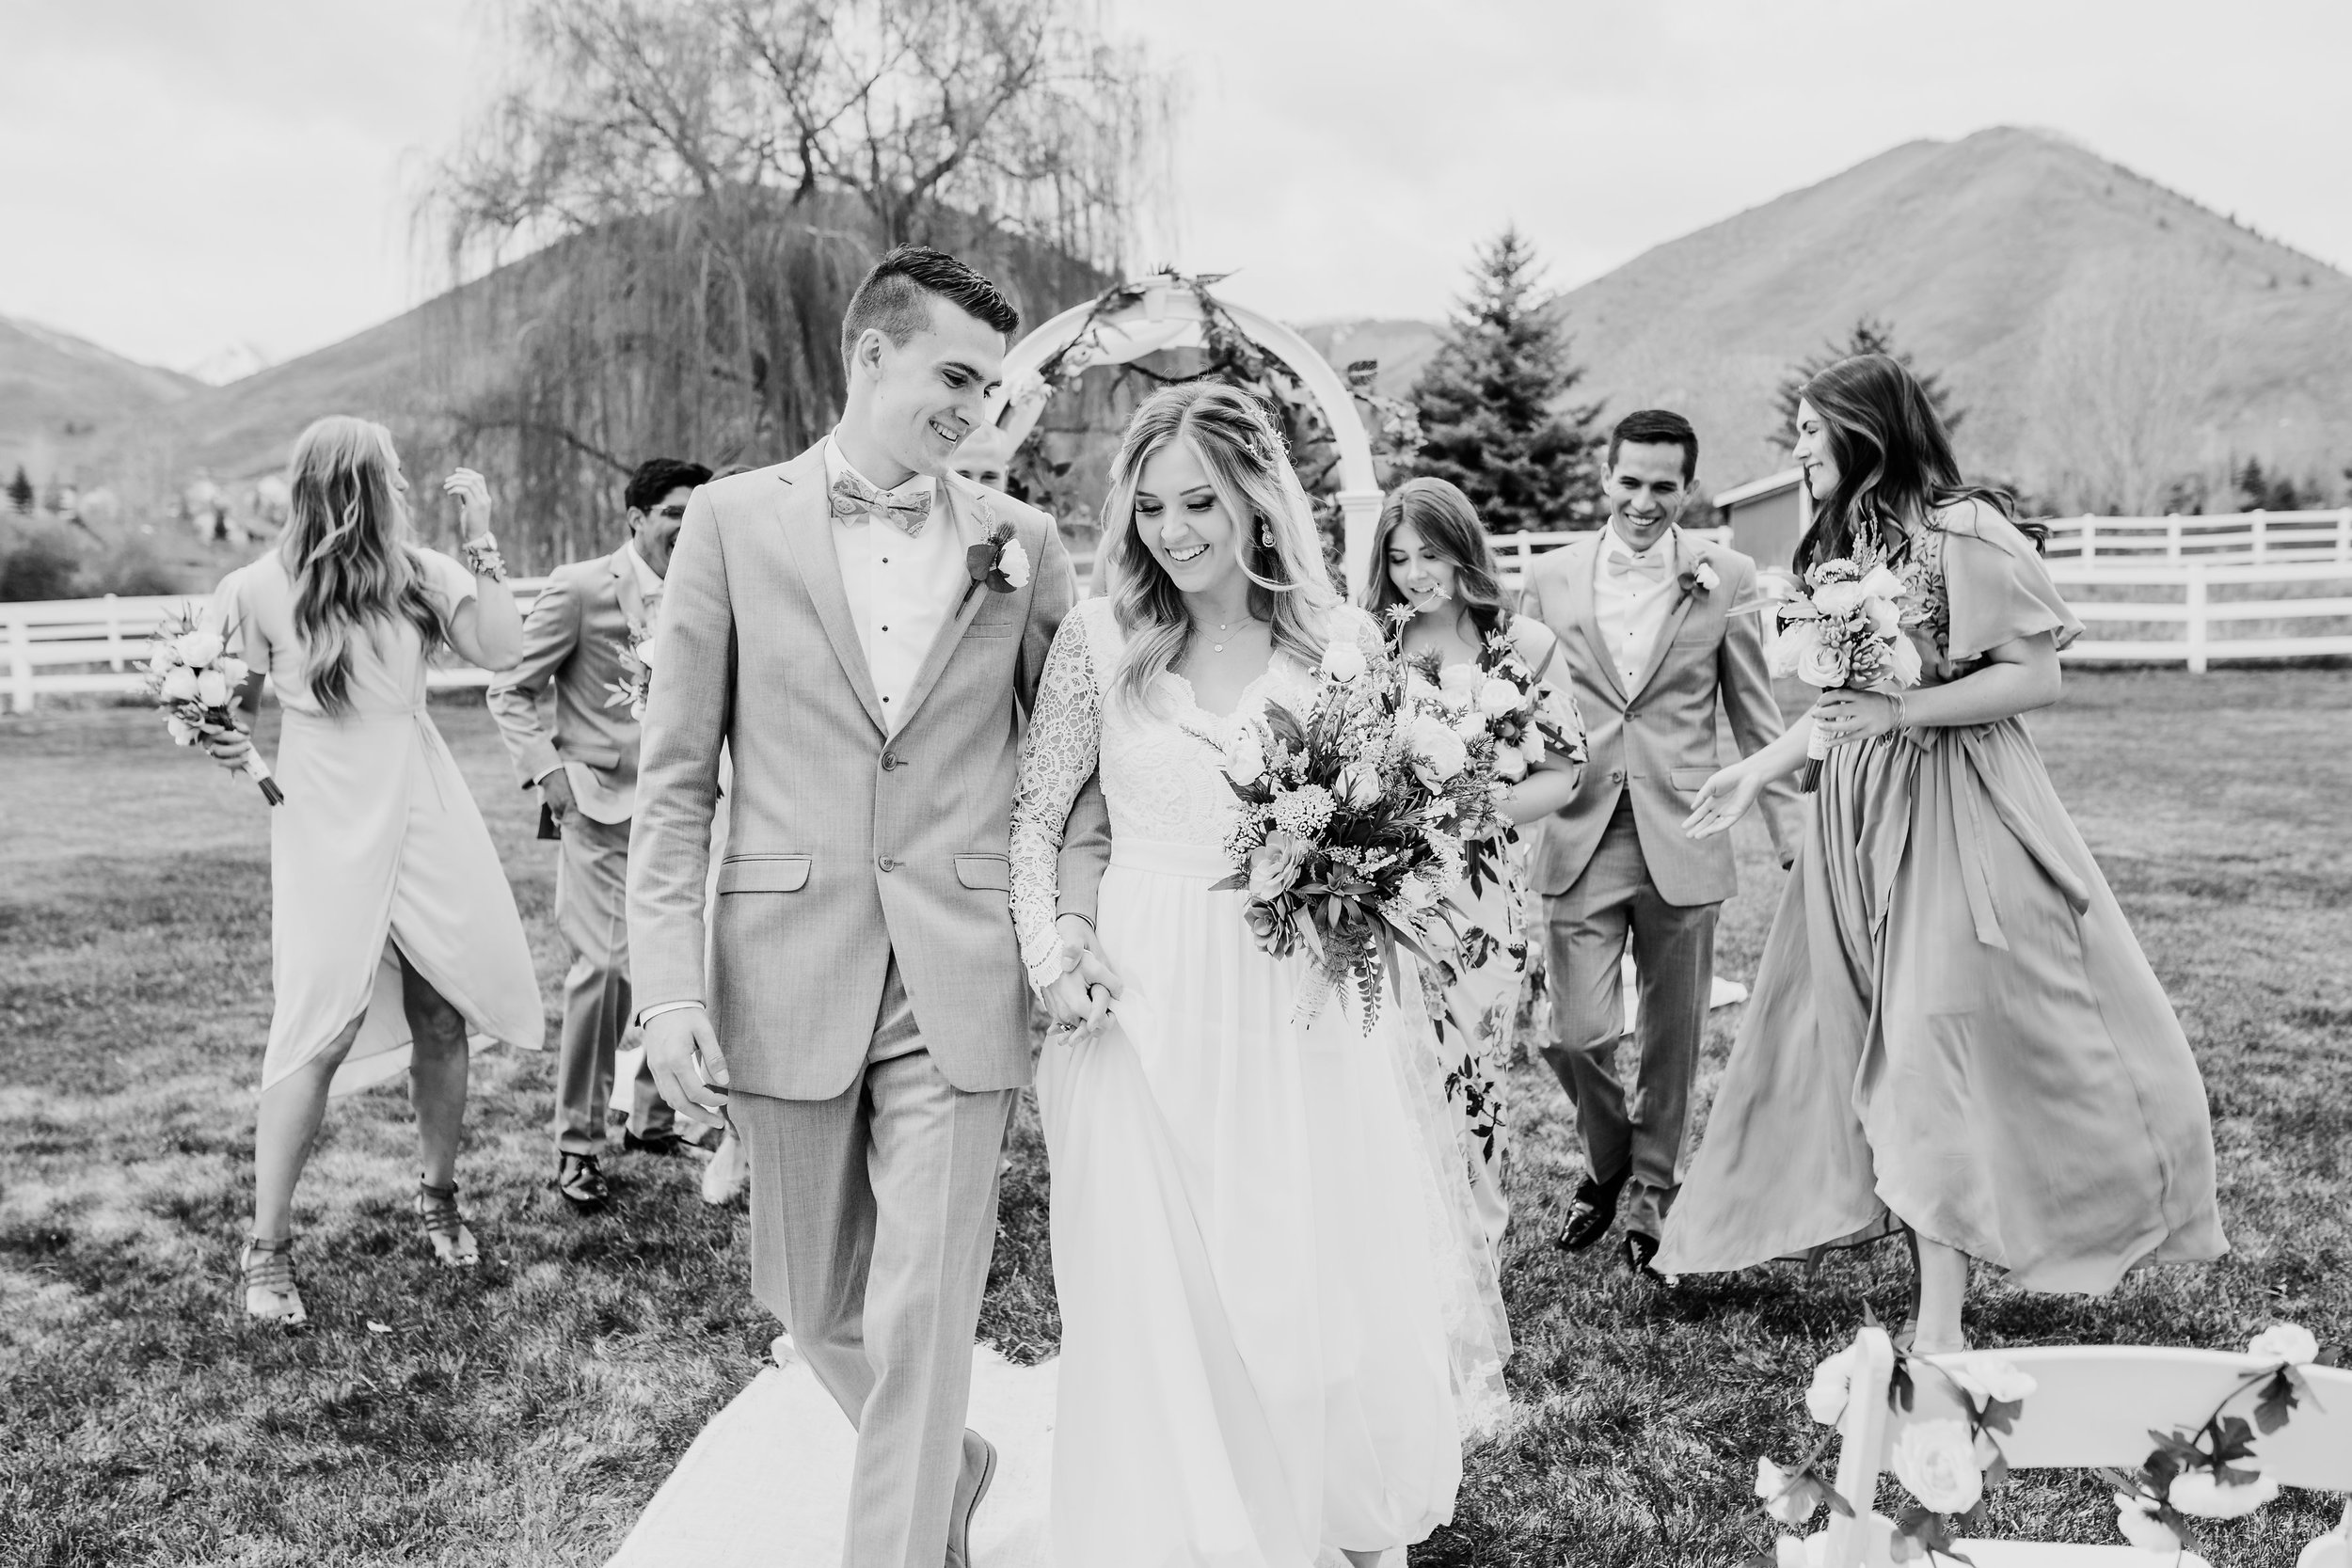 let calli richards capture all the organic moments of your wedding day with her professional wedding photography in boulder colorado